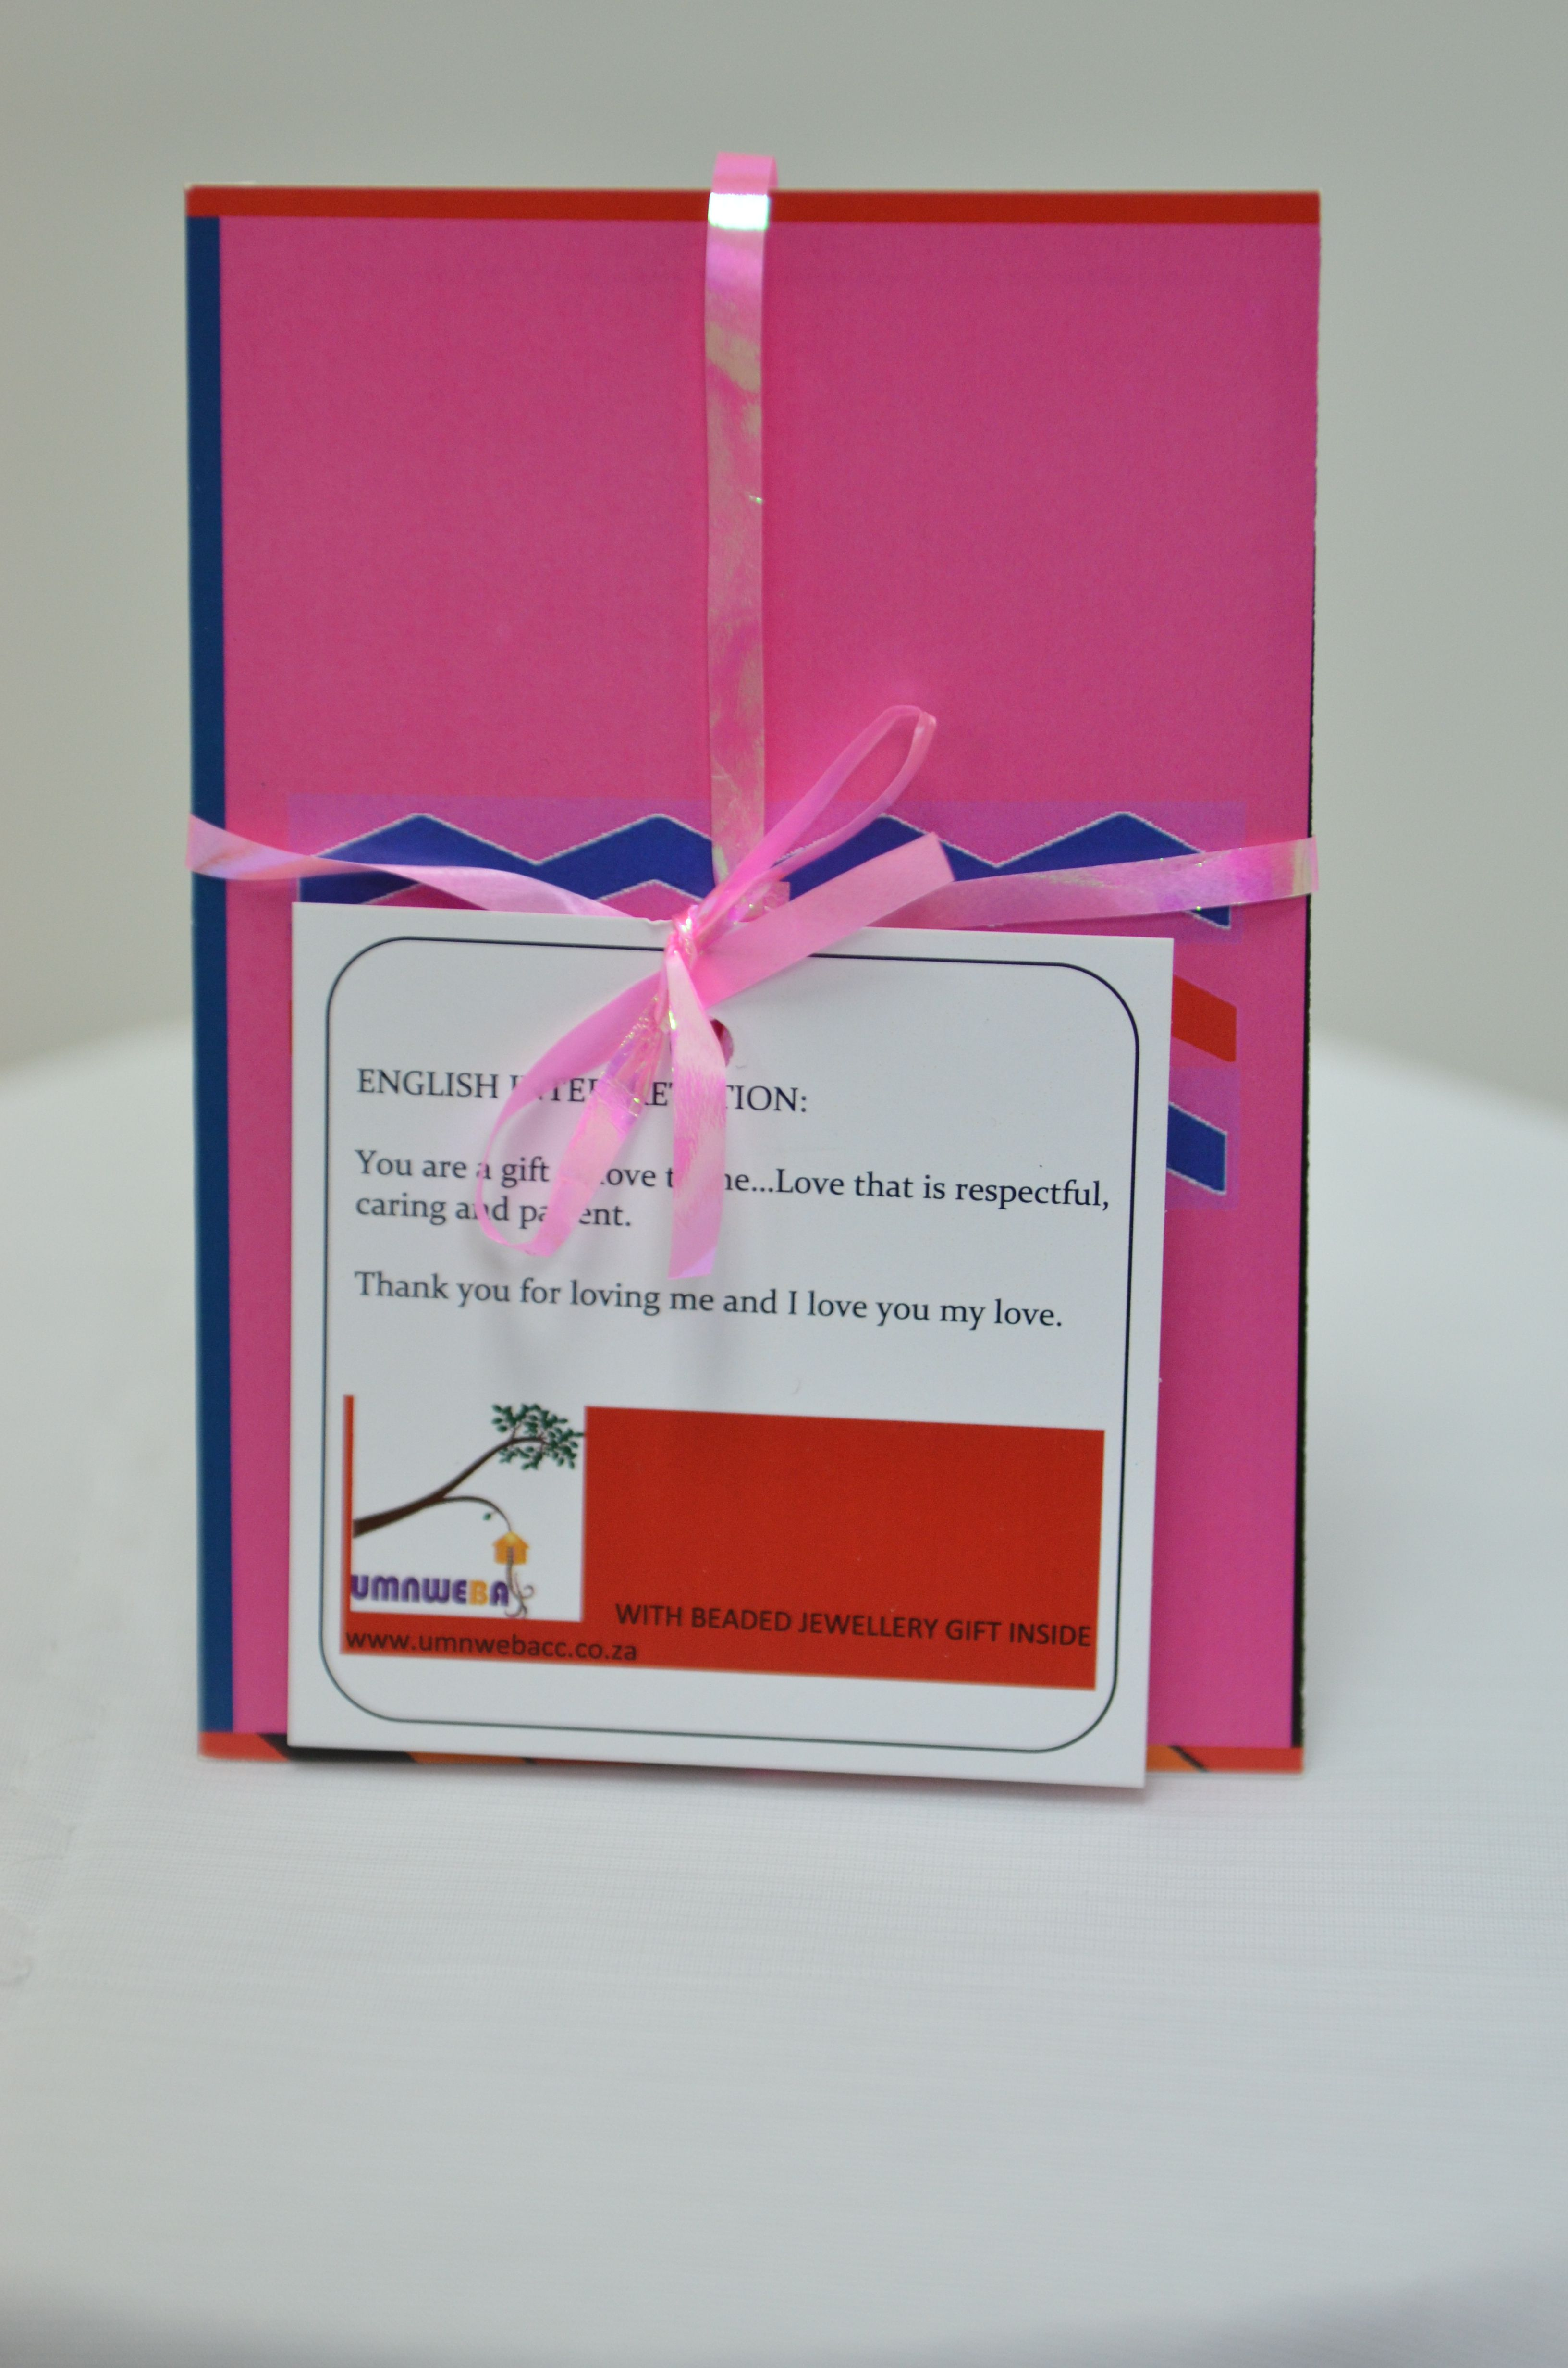 Umnweba Love Card An Authentic African Greeting Card Written In